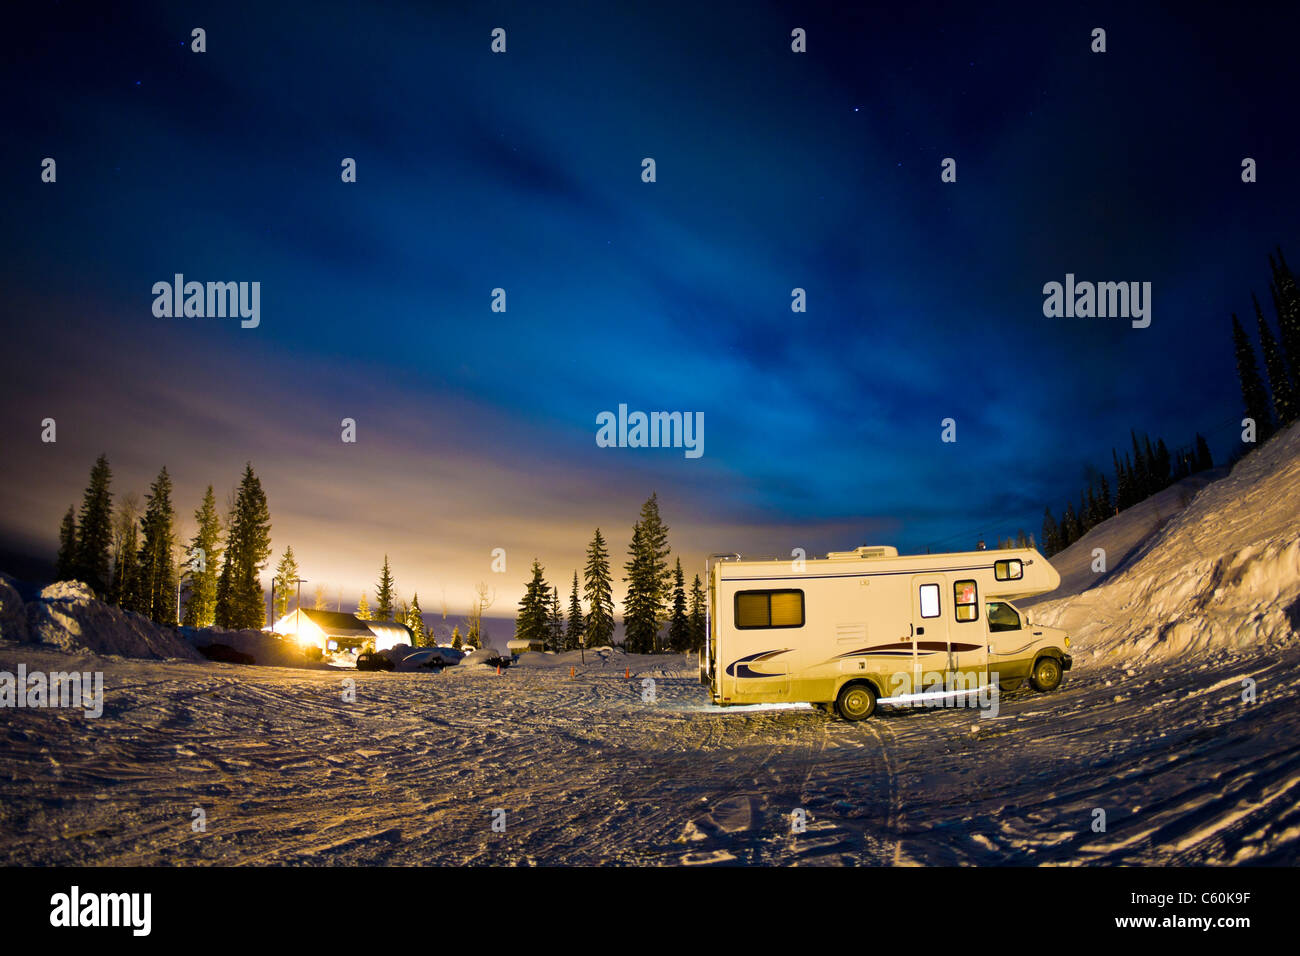 Recreational vehicle parked on hillside - Stock Image